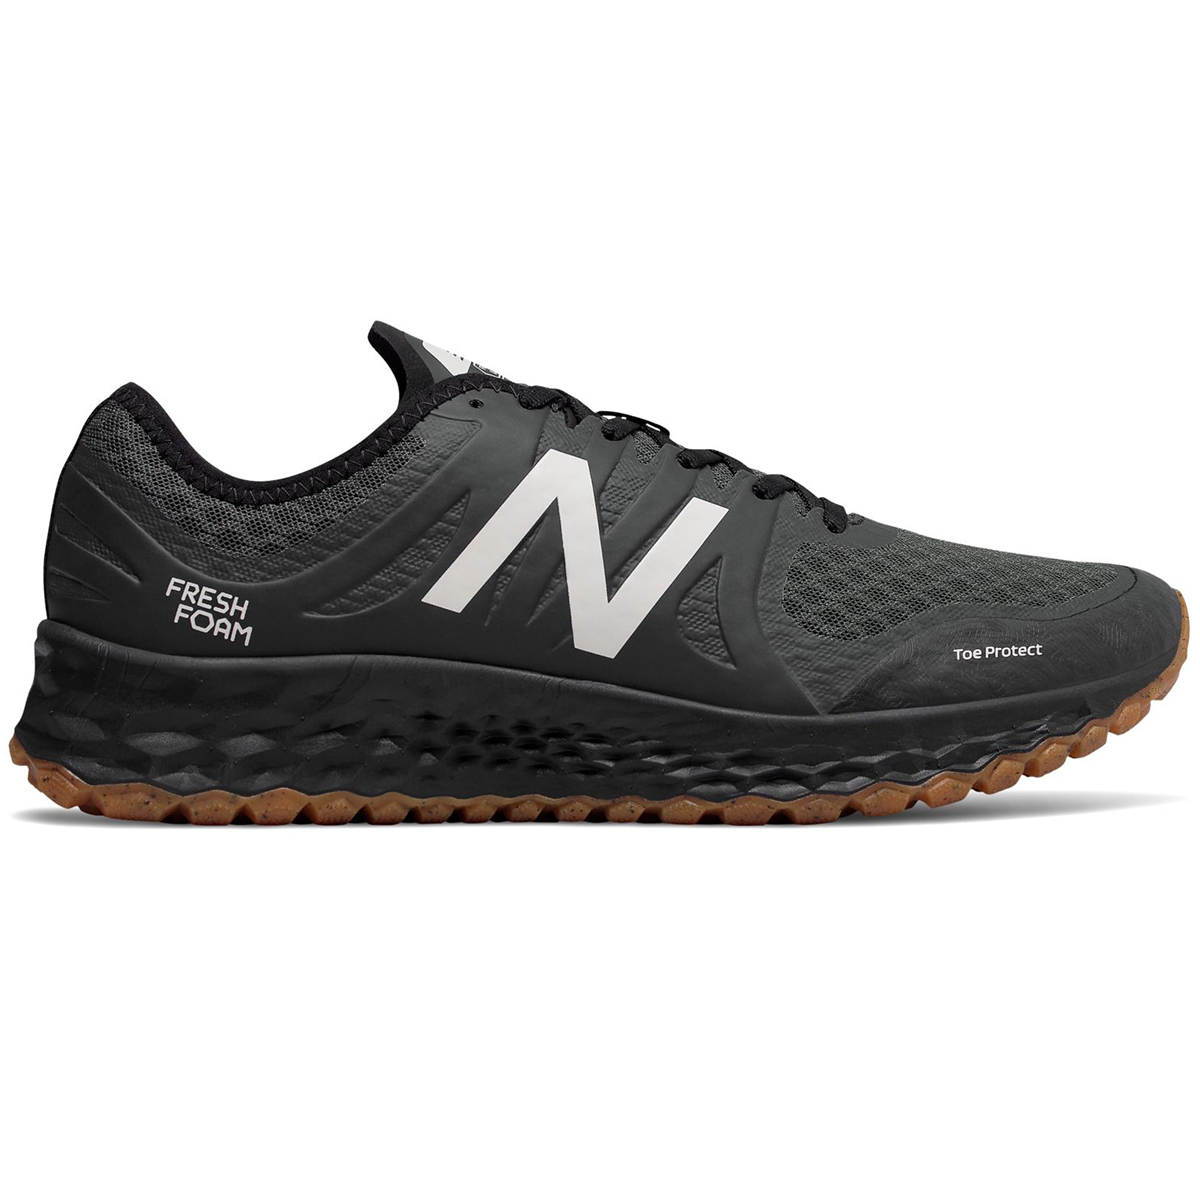 New Balance Men's Fresh Foam Kaymin Trl Trail Running Shoes - Black, 13